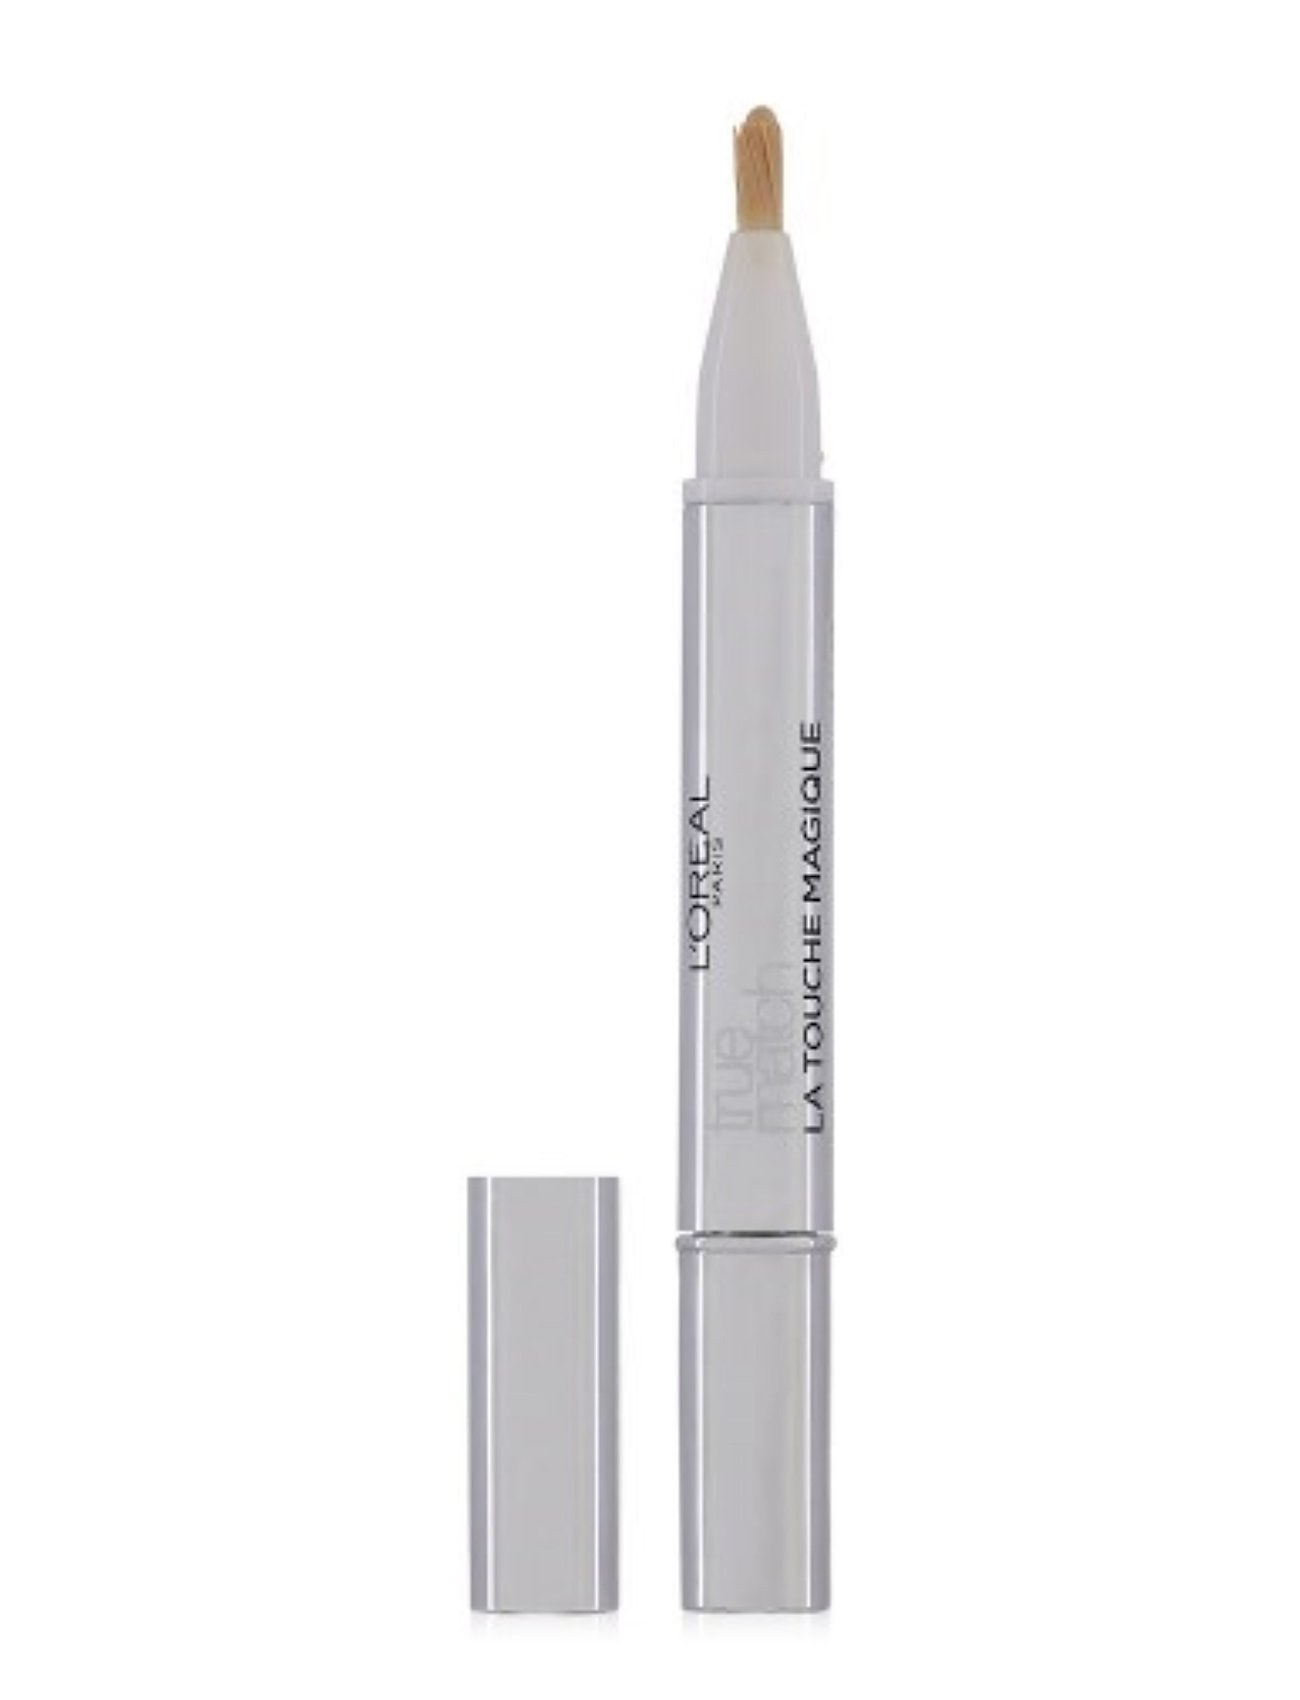 l'orã©al paris True match touch magic concealer fra boozt.com dk